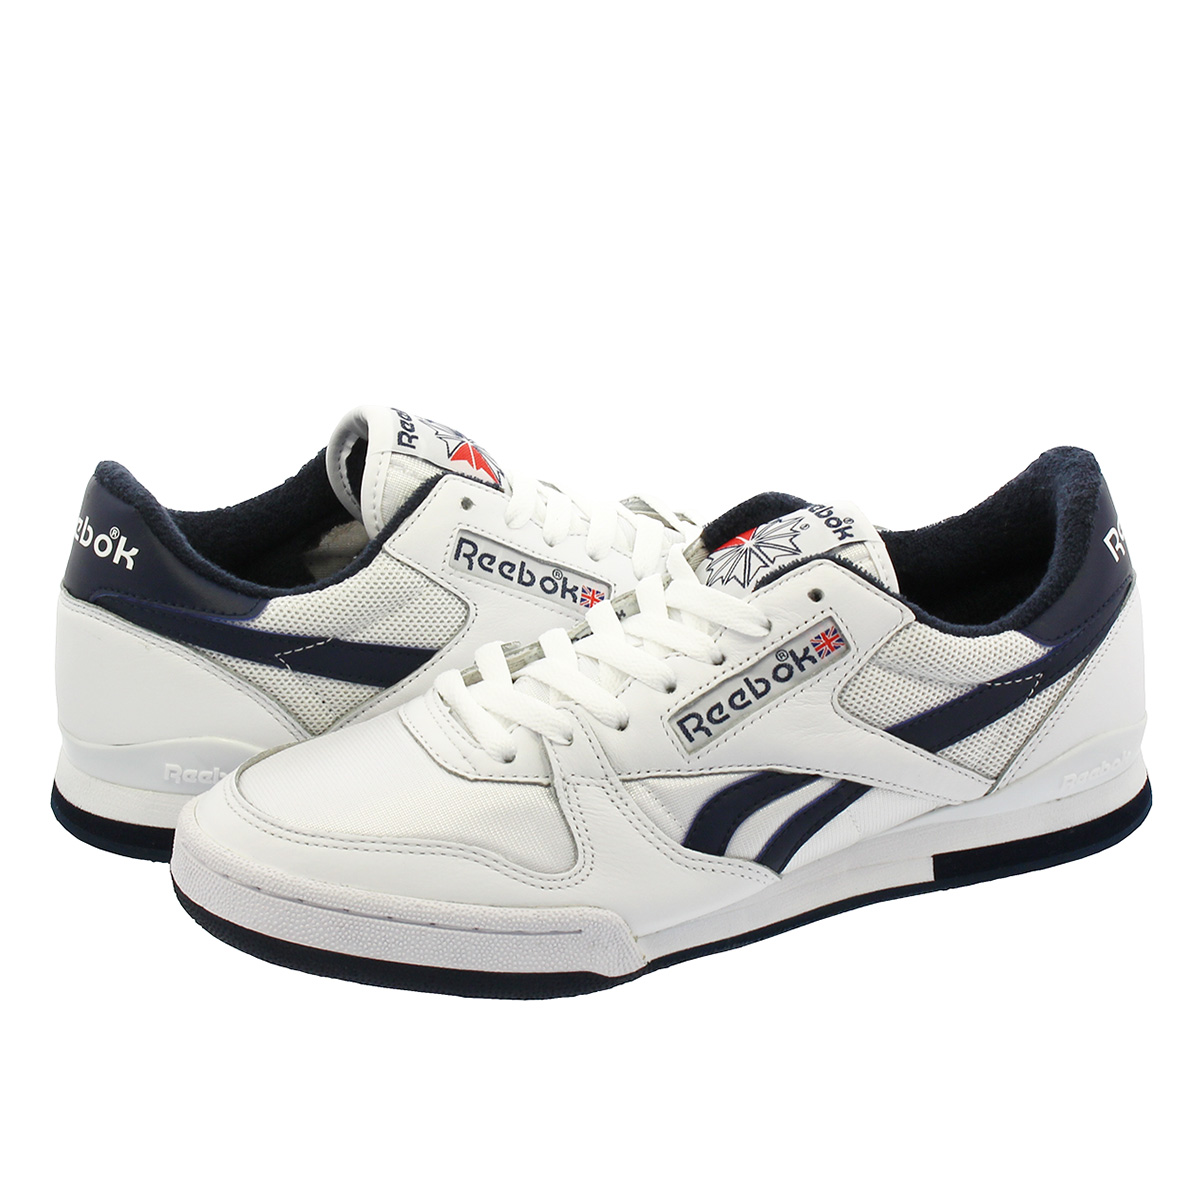 8c592e1dc2 Archive WHITE/NAVY/RED cn3449 professional for Reebok PHASE 1 PRO ARCHIVE  Reebok phase for 1